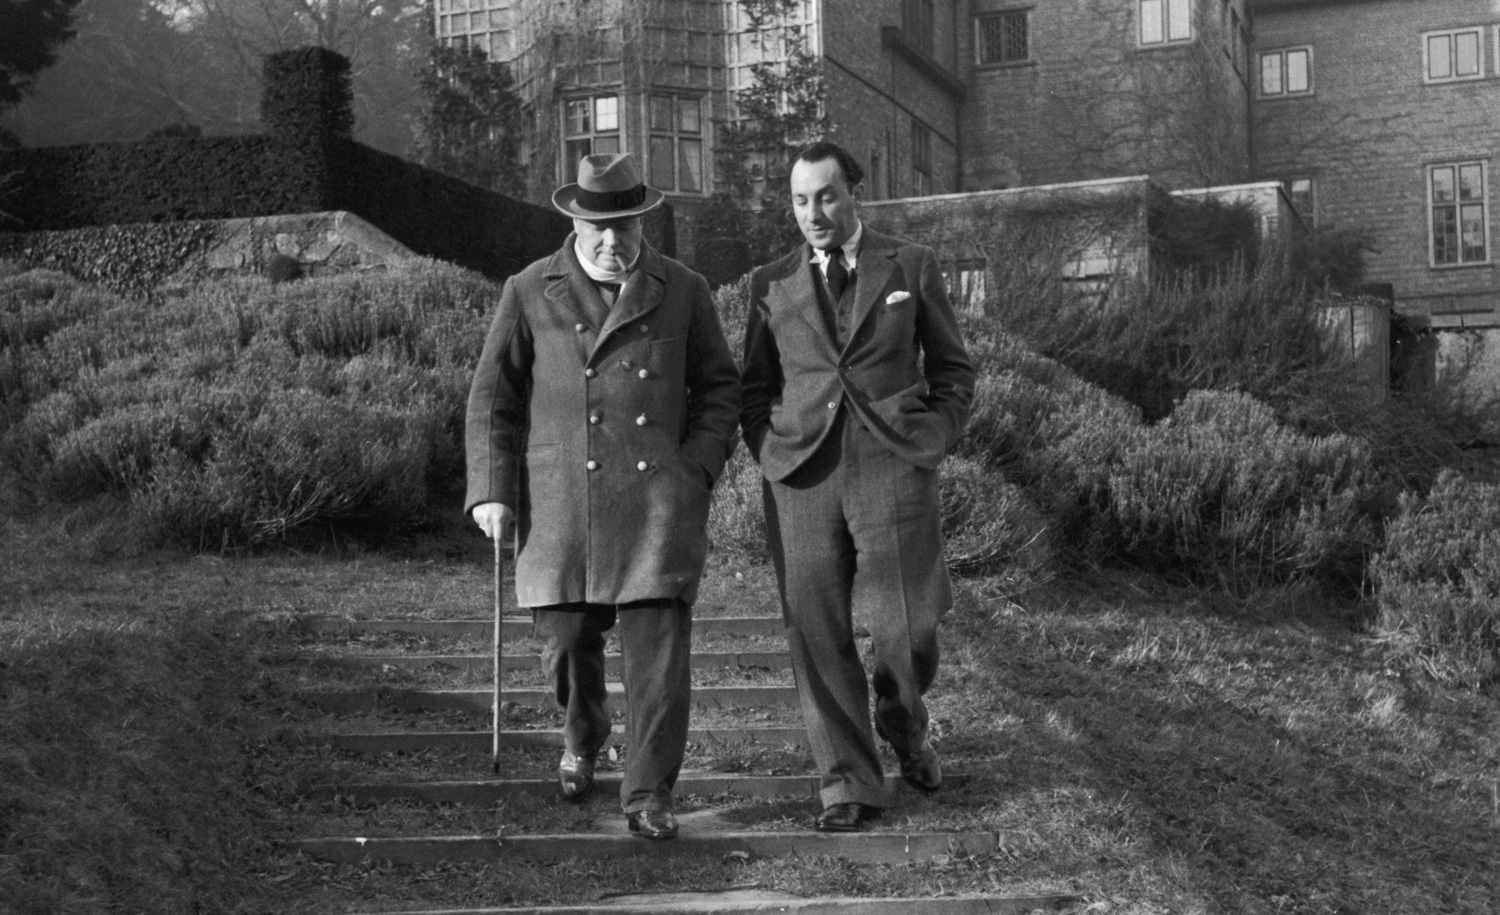 Winston Churchill at his country home in Kent with Picture Posteditor Stefan Lorant on February 25, 1939. Kurt Hutton/Picture Post/Hulton Archive/Getty Images.